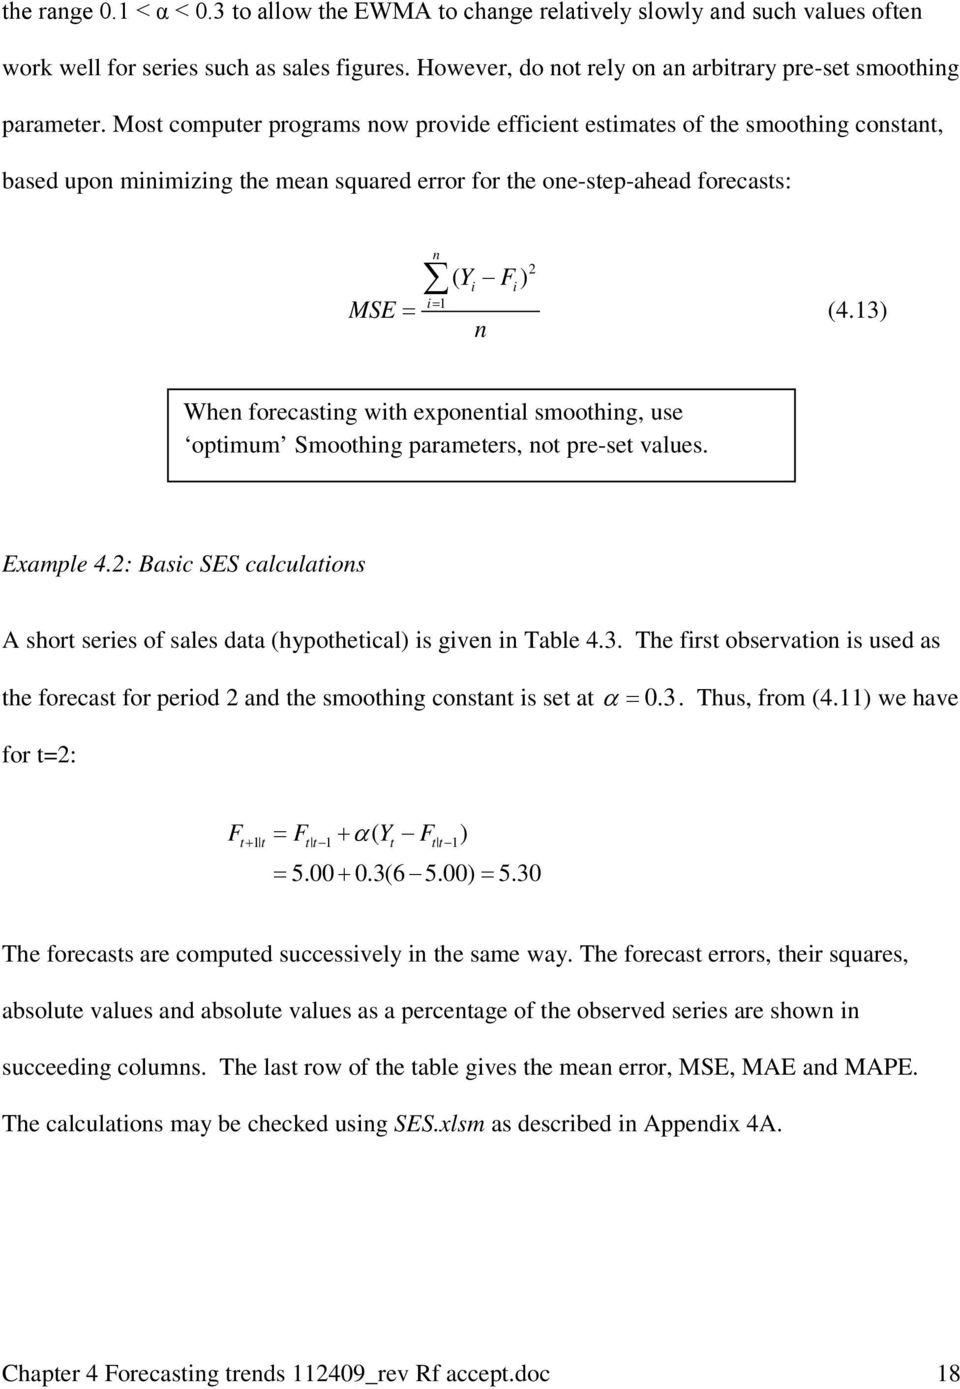 4  Forecasting Trends: Exponential Smoothing - PDF